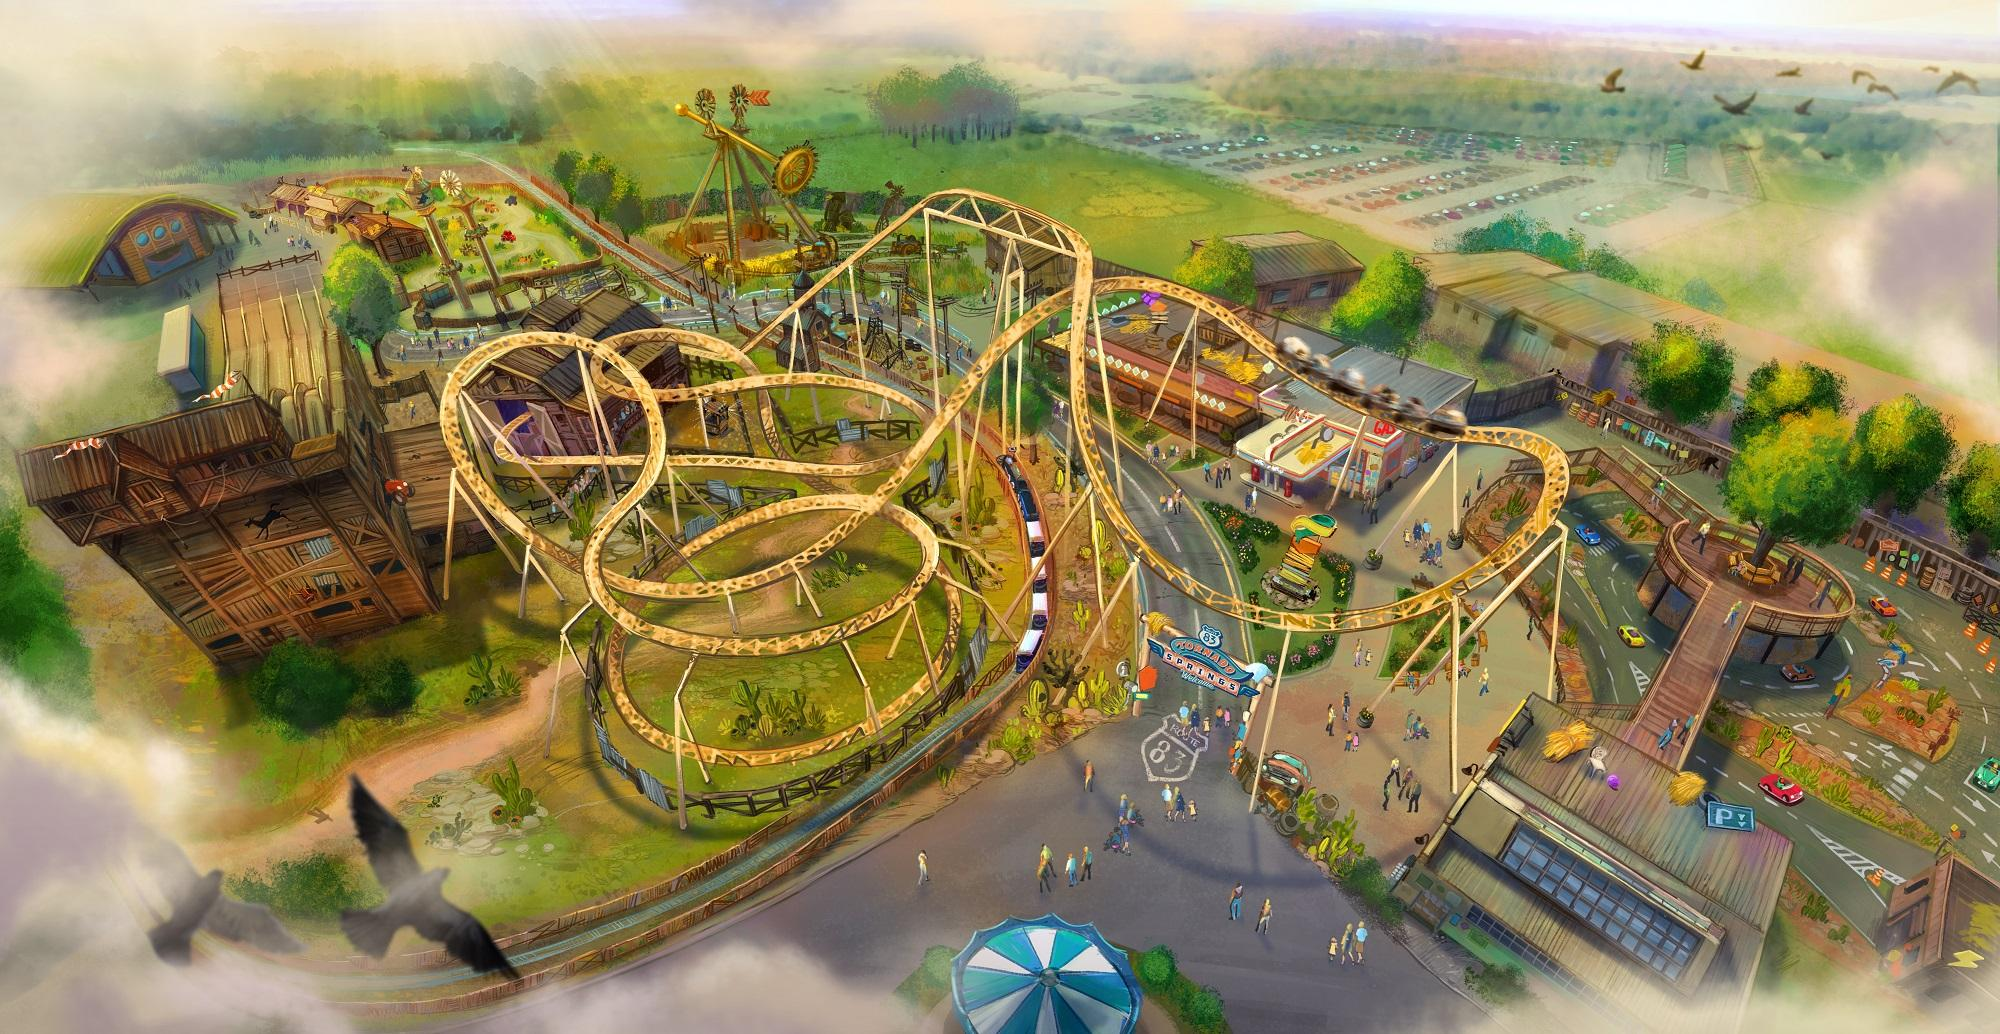 Multi-million-pound new themed world set to launch at Paultons Park in 2020